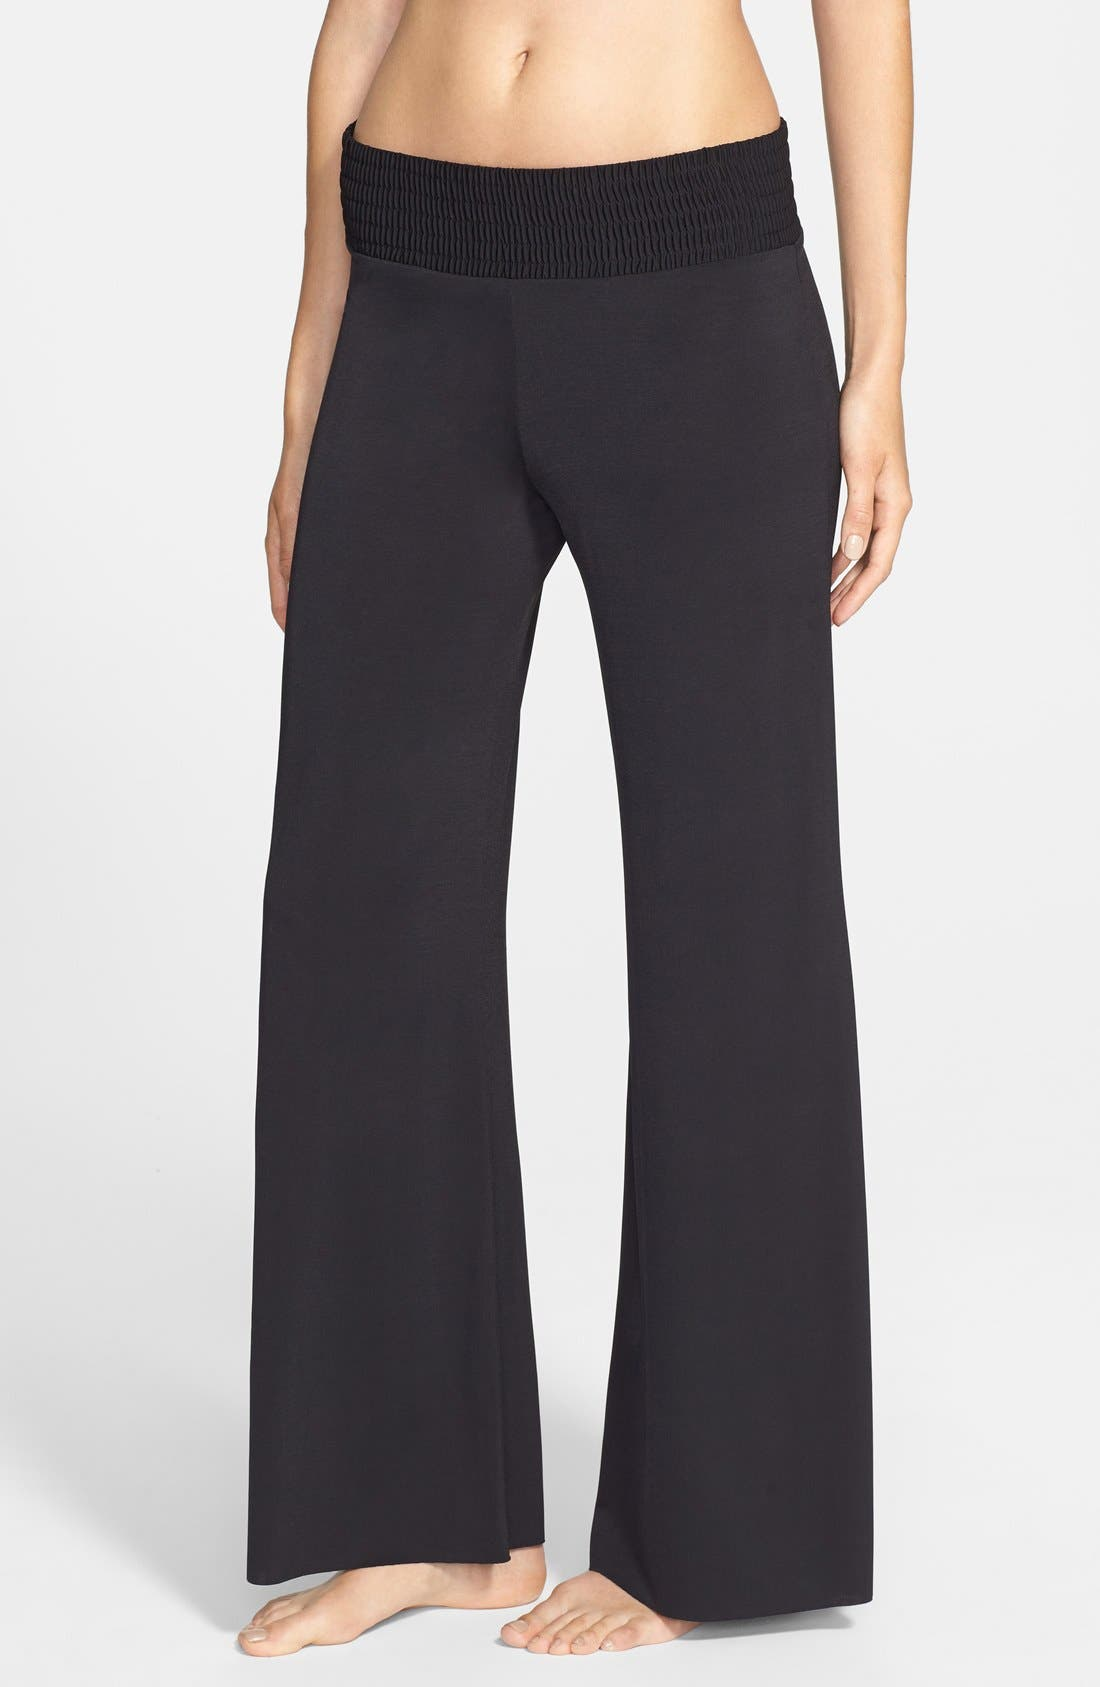 Alternate Image 1 Selected - Onzie Palazzo Pants